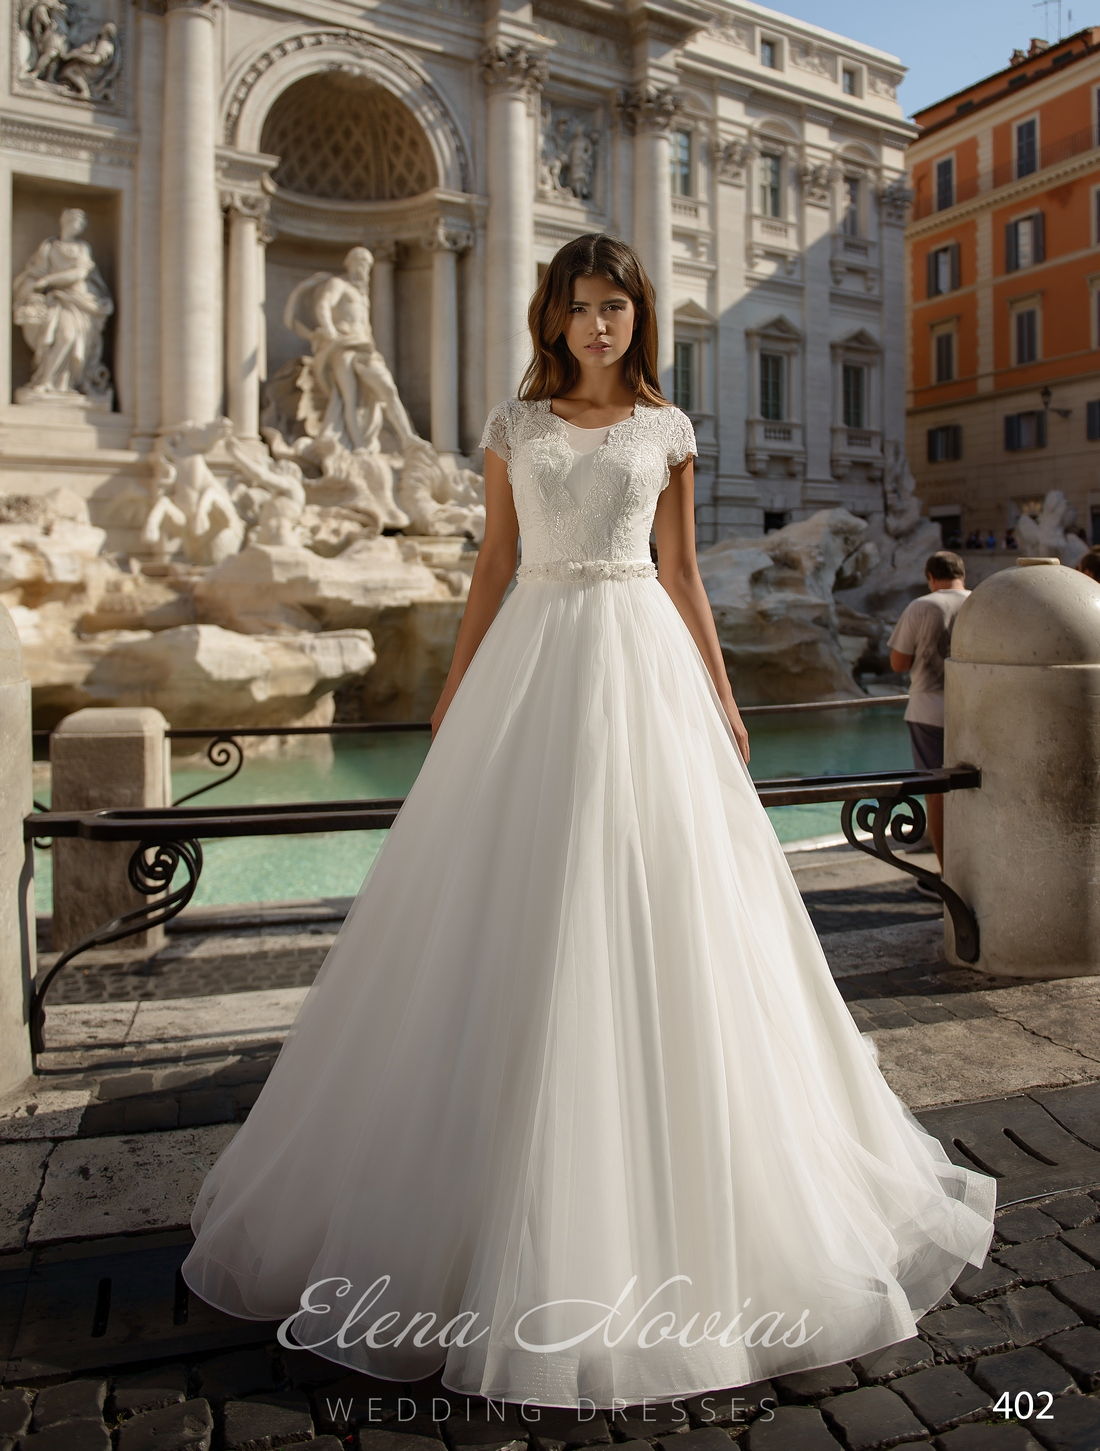 Wedding dress wholesale 402